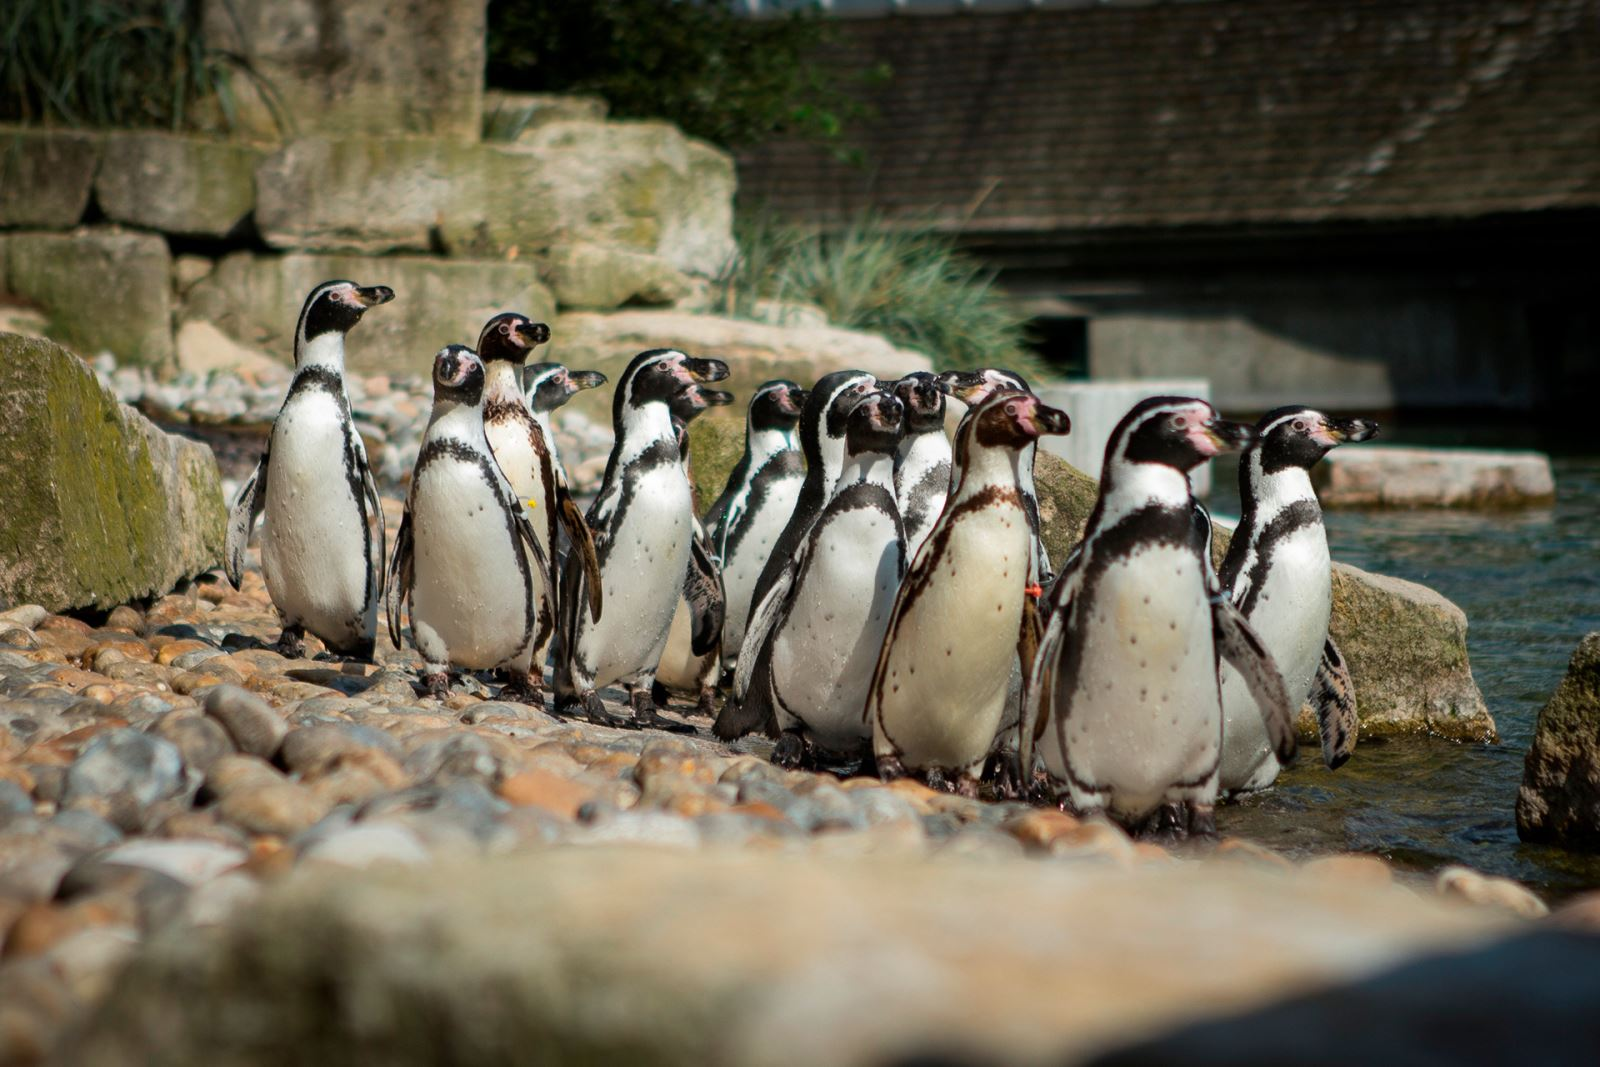 Marwell's Penguin Webcams